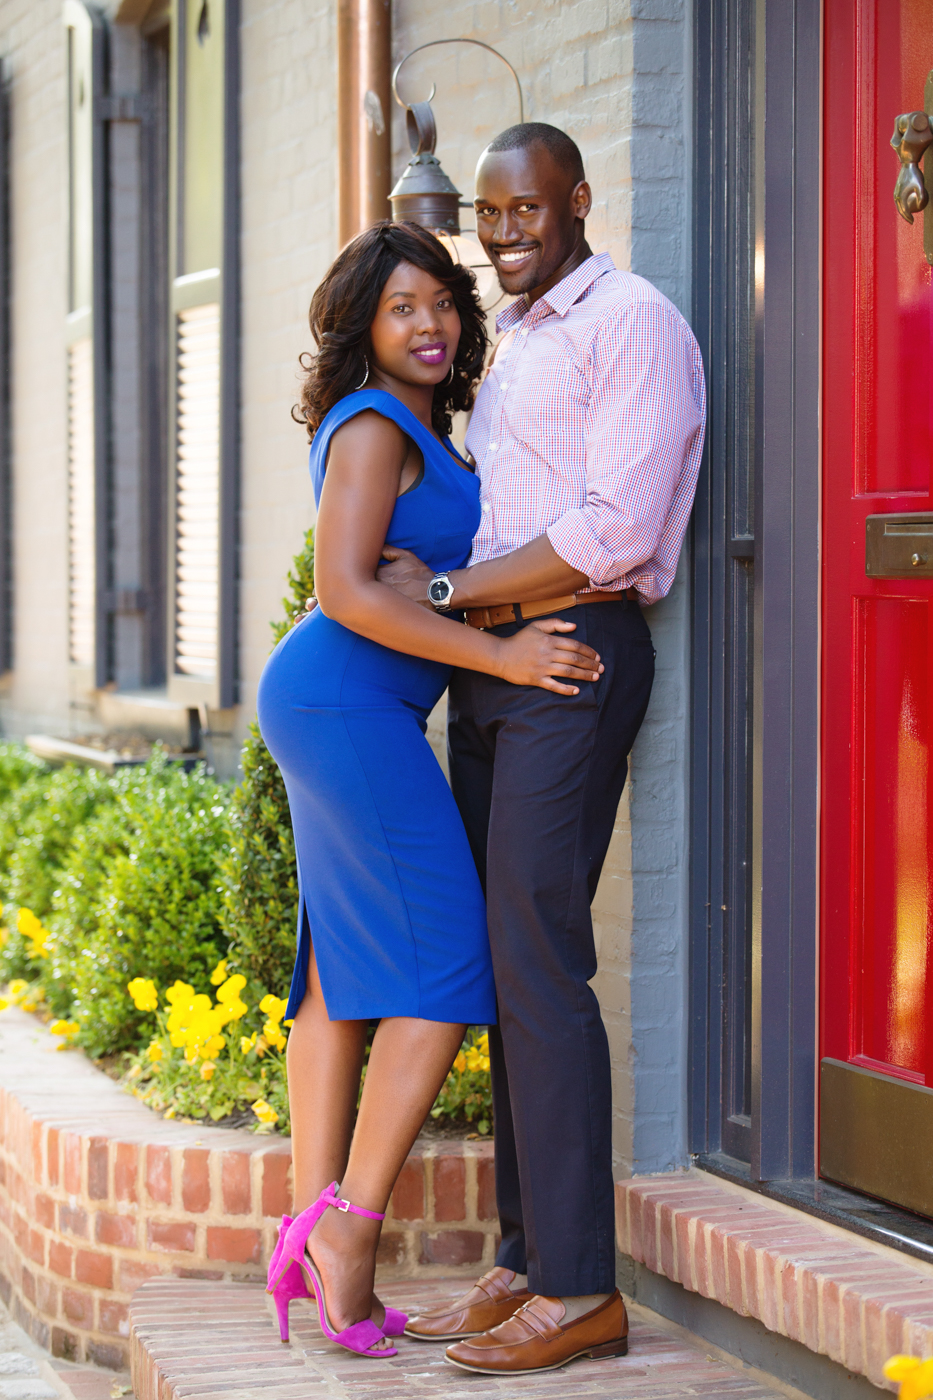 Jessica-Daniel-Engagement-Photo-Shoot-in-the-heart-of-Washington-DC-Ksenia-Pro-Photography-4